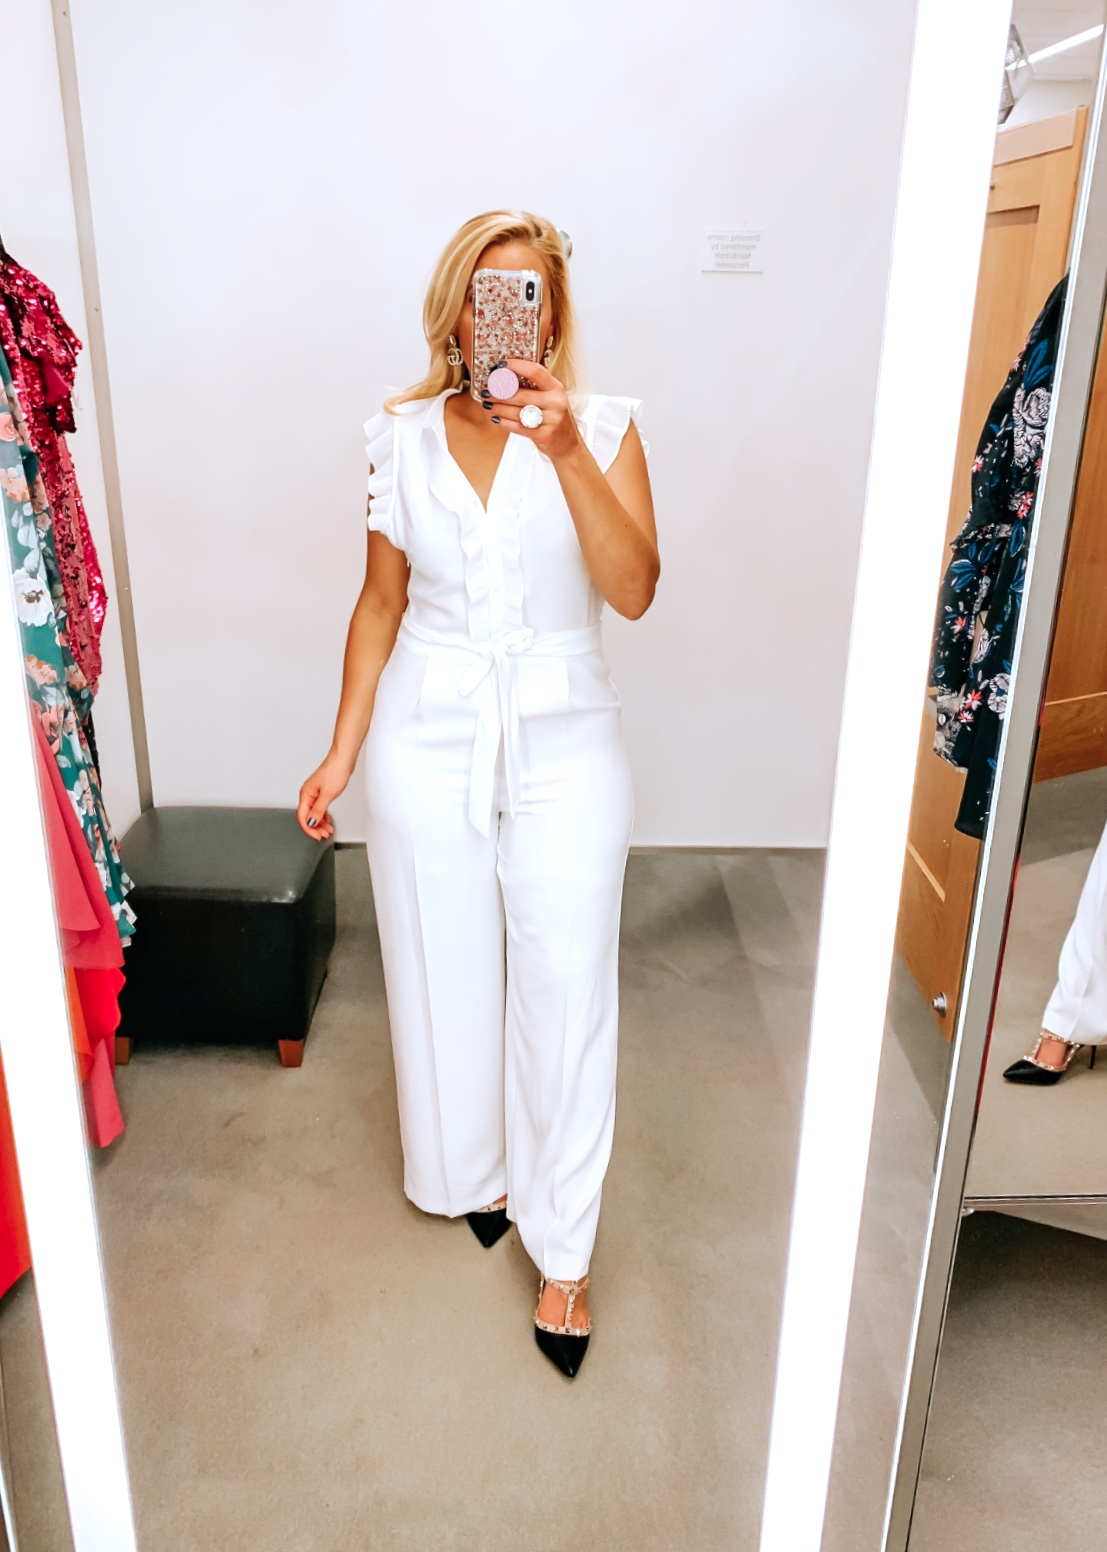 Tampa Blogger Jenn Truman providing a mirror selfie inside Nordstrom at Tampa International Plaza. She is wearing a CECE white jumpsuit from Nordstrom and Valentino dupe black studded heels from Amazon. She is holding her phone for a mirror selfie.